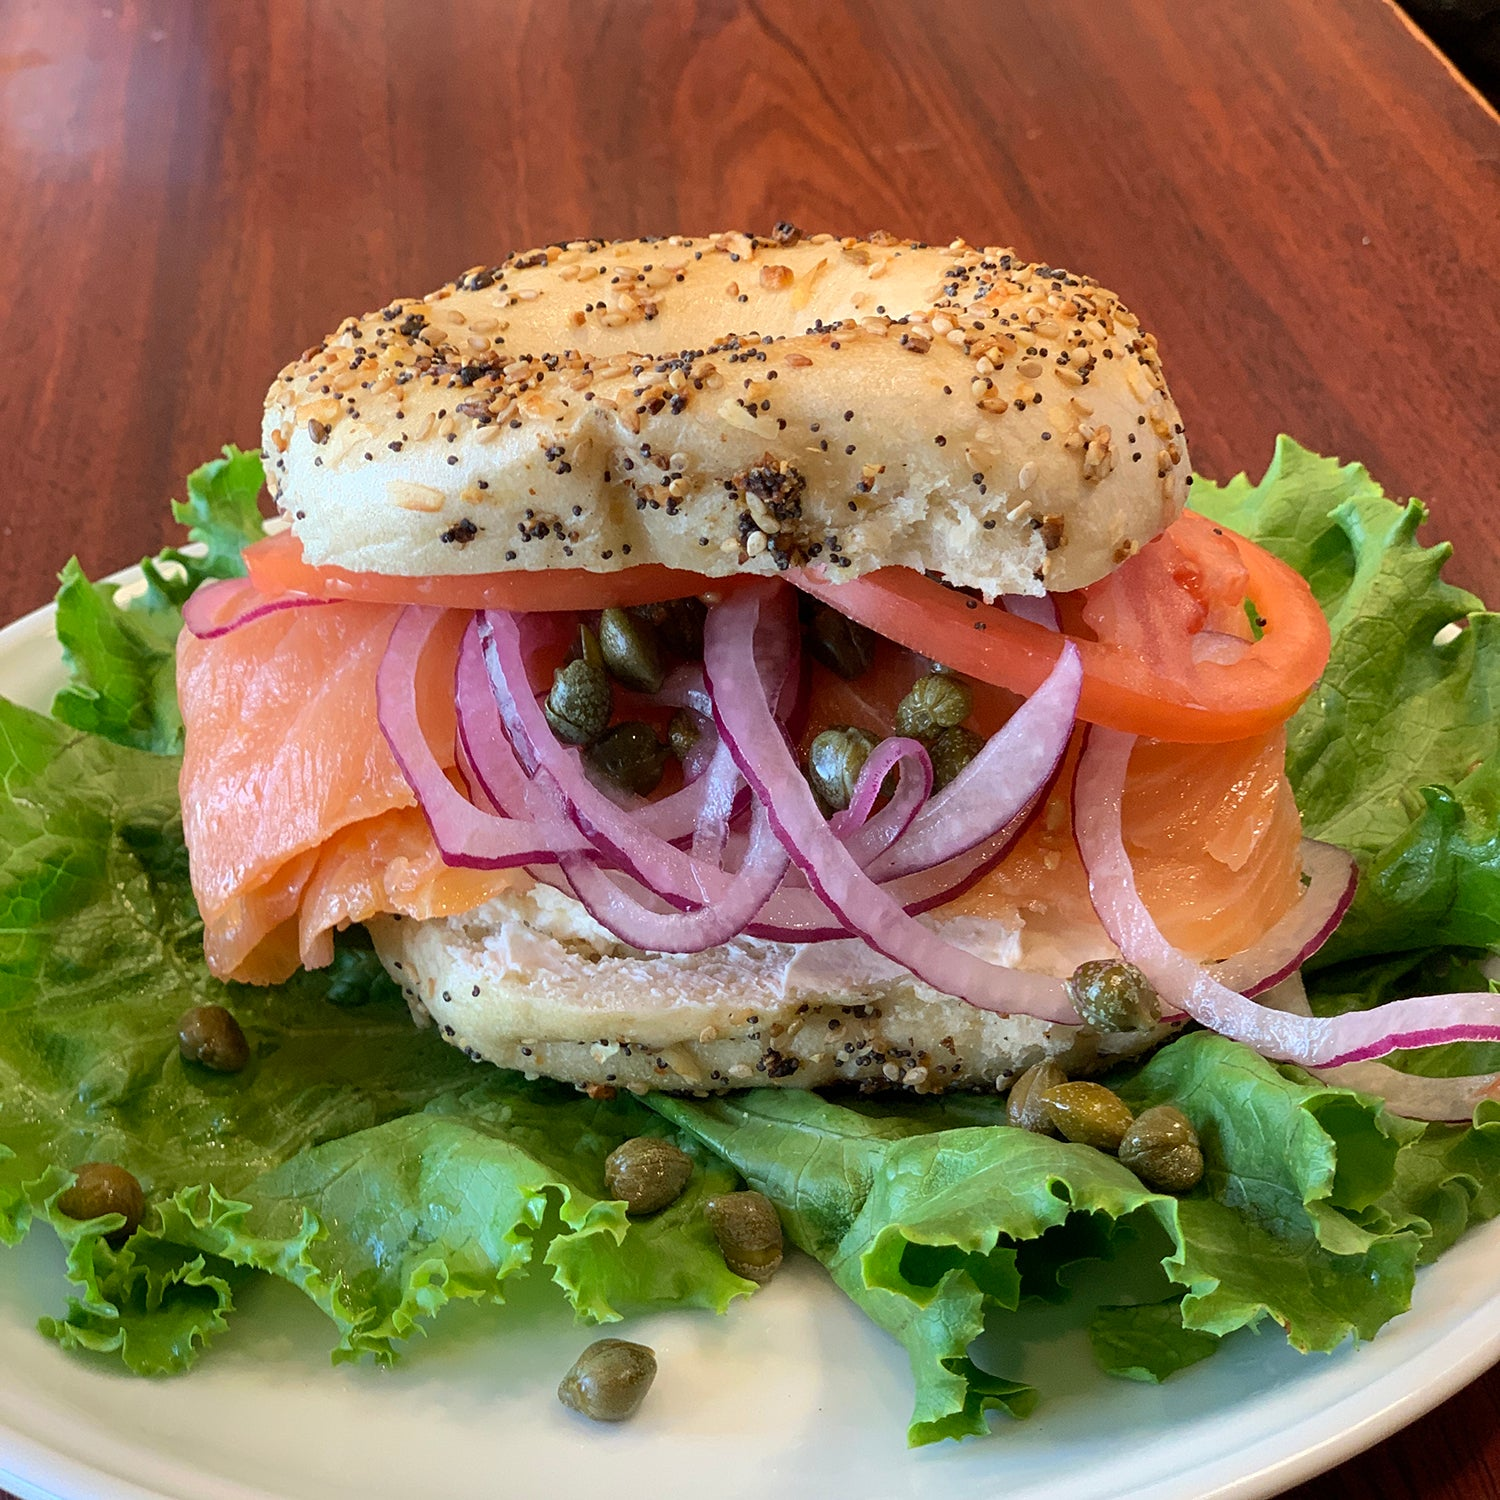 Novie - Sliced Lox, Cream Cheese Tomatoes, Onion, Capers